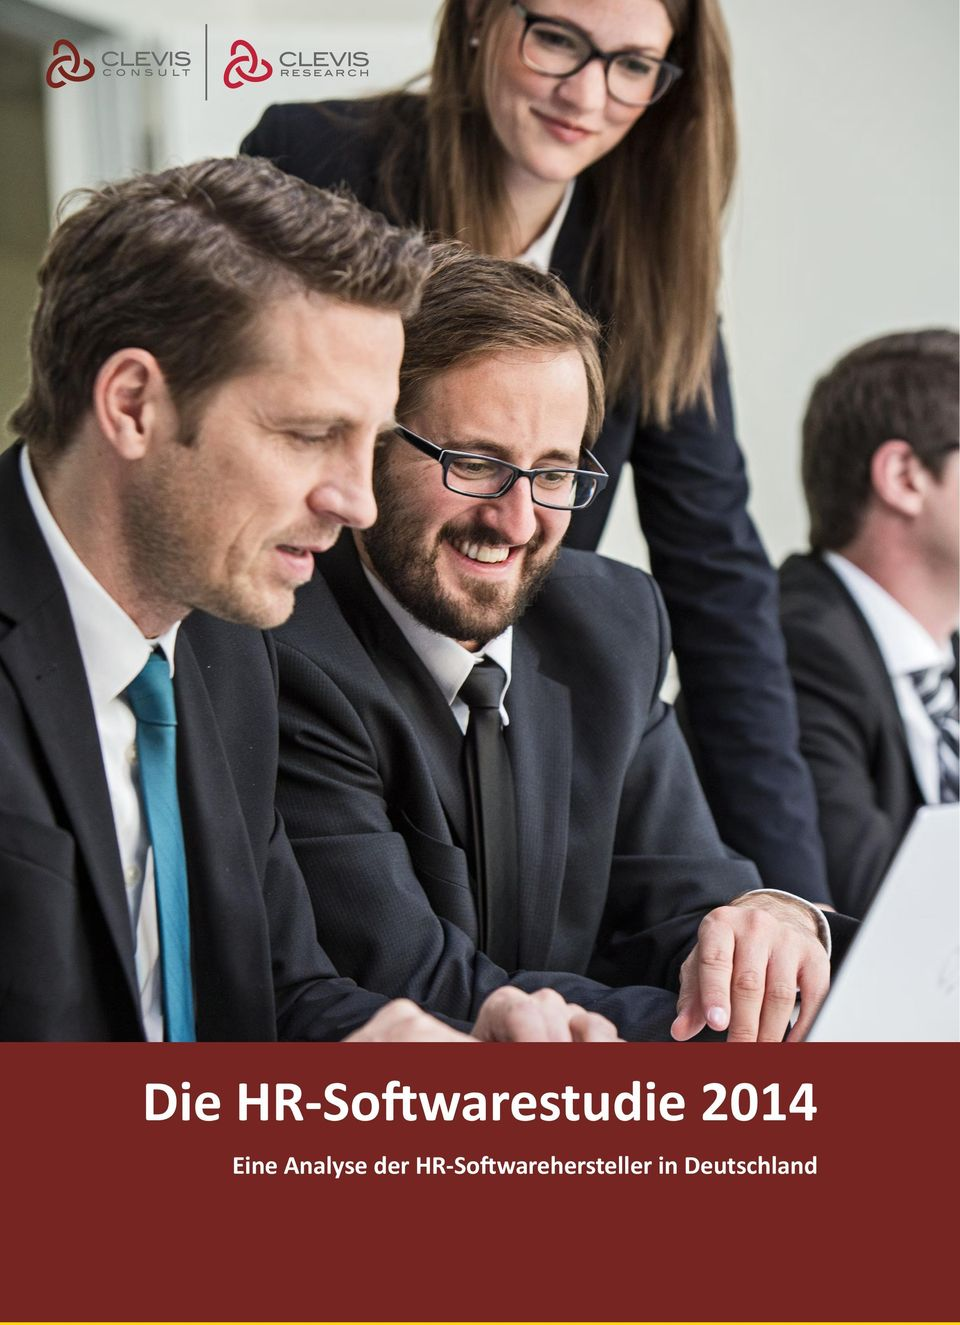 HR-Softwarestudie 2014 Eine